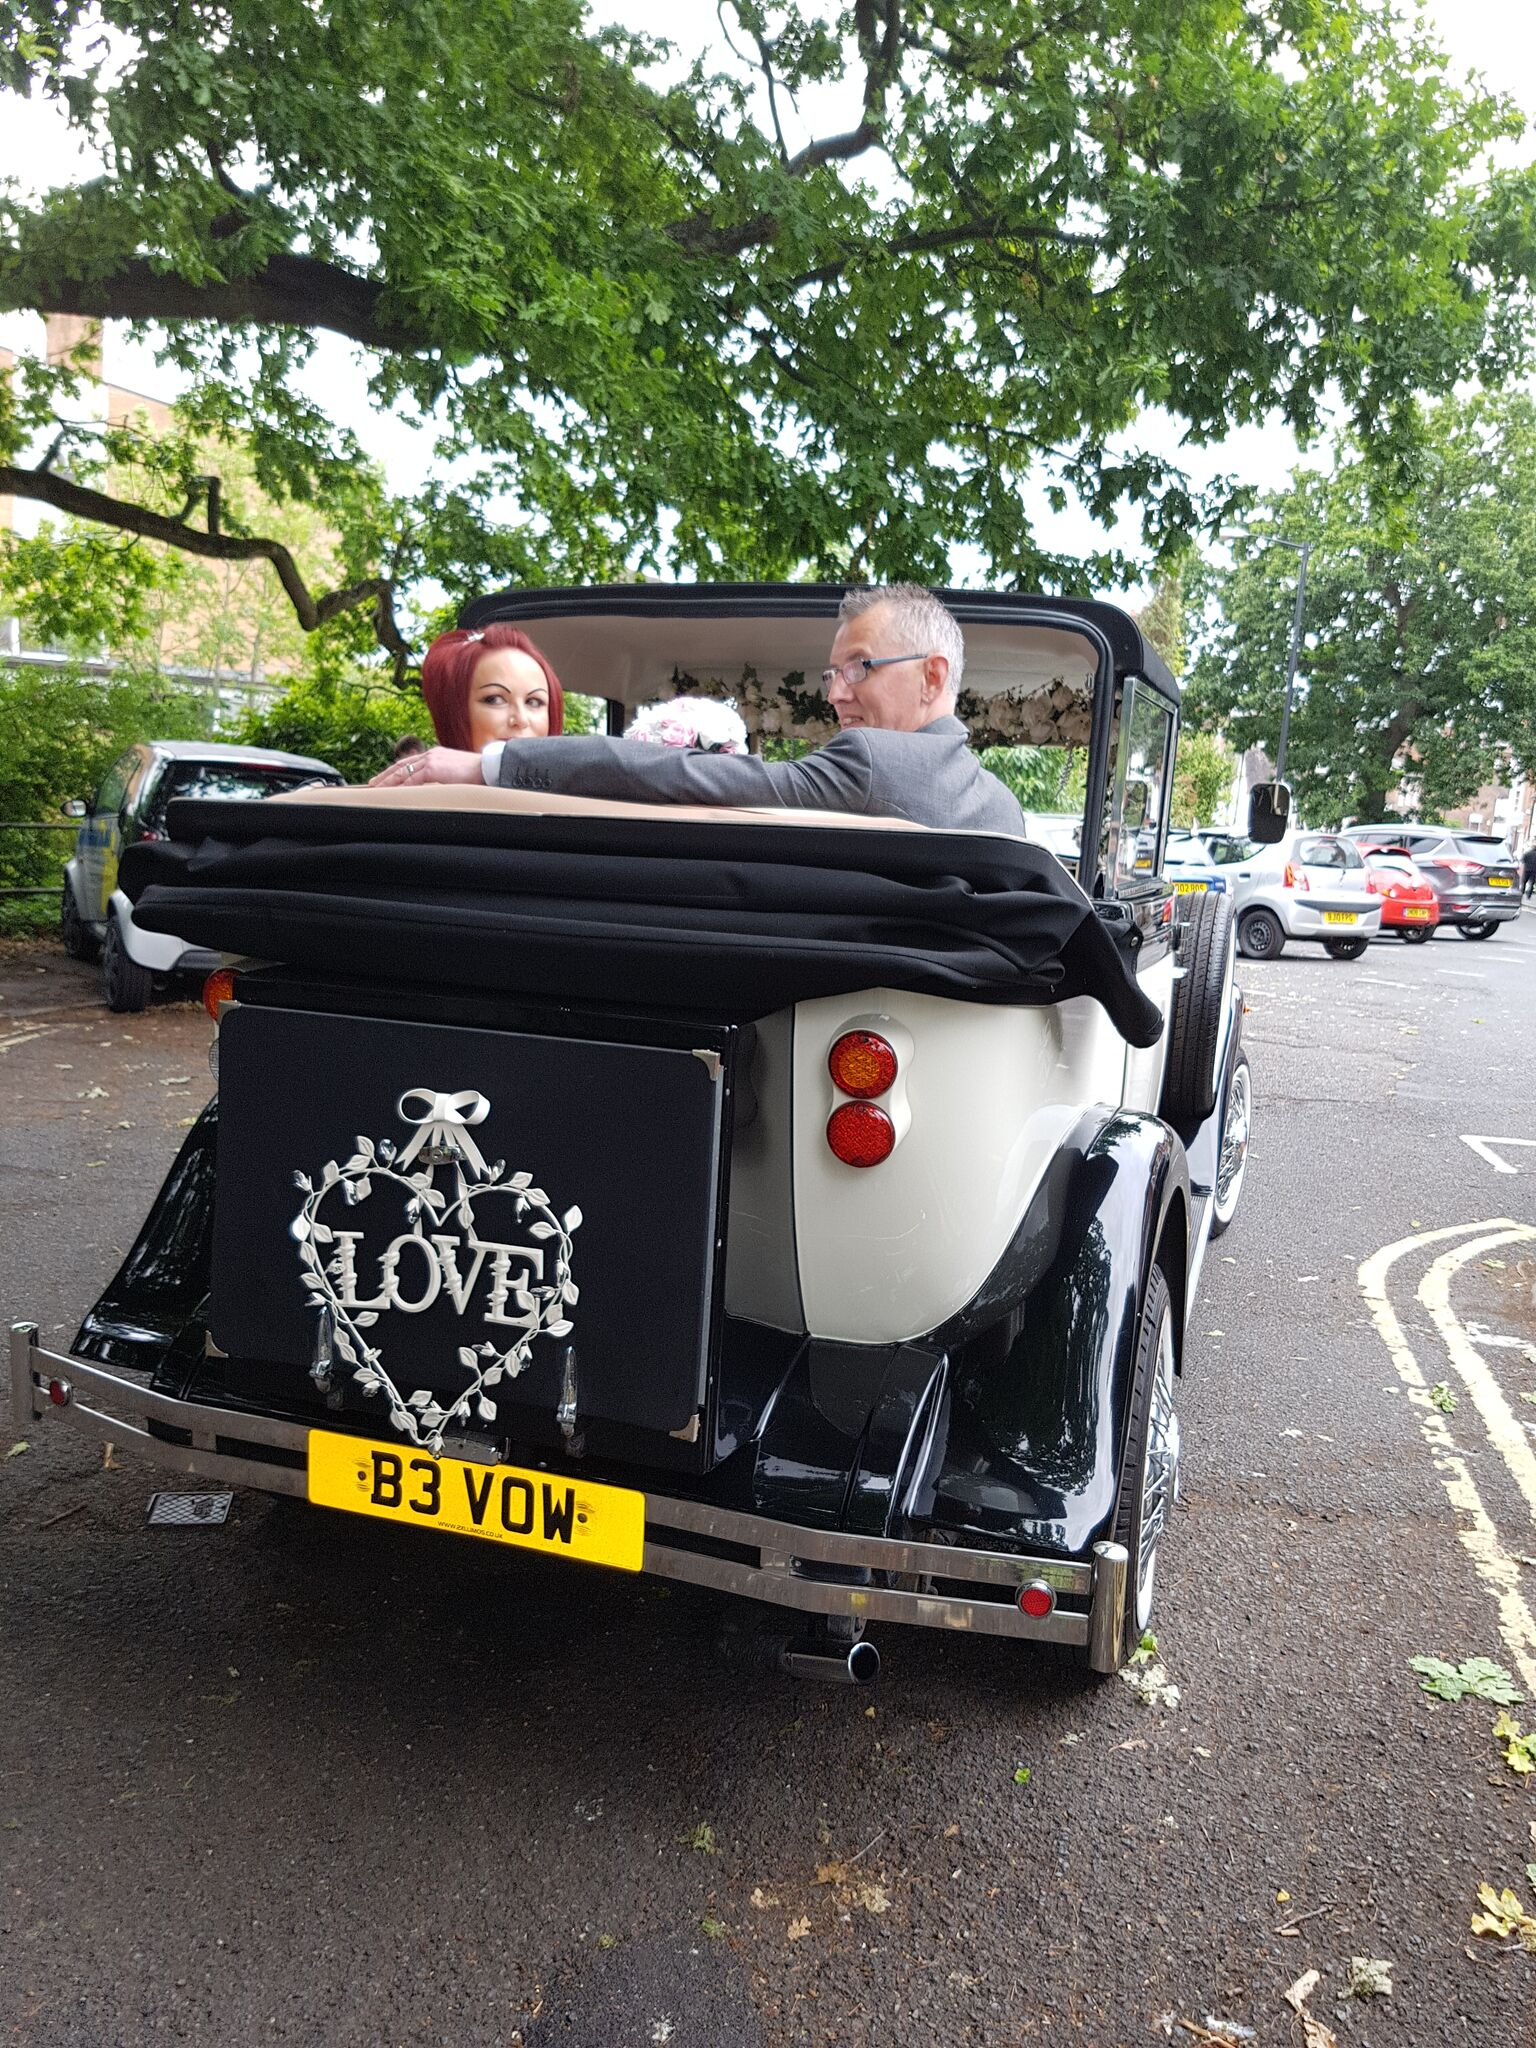 The best shots of wedding transport